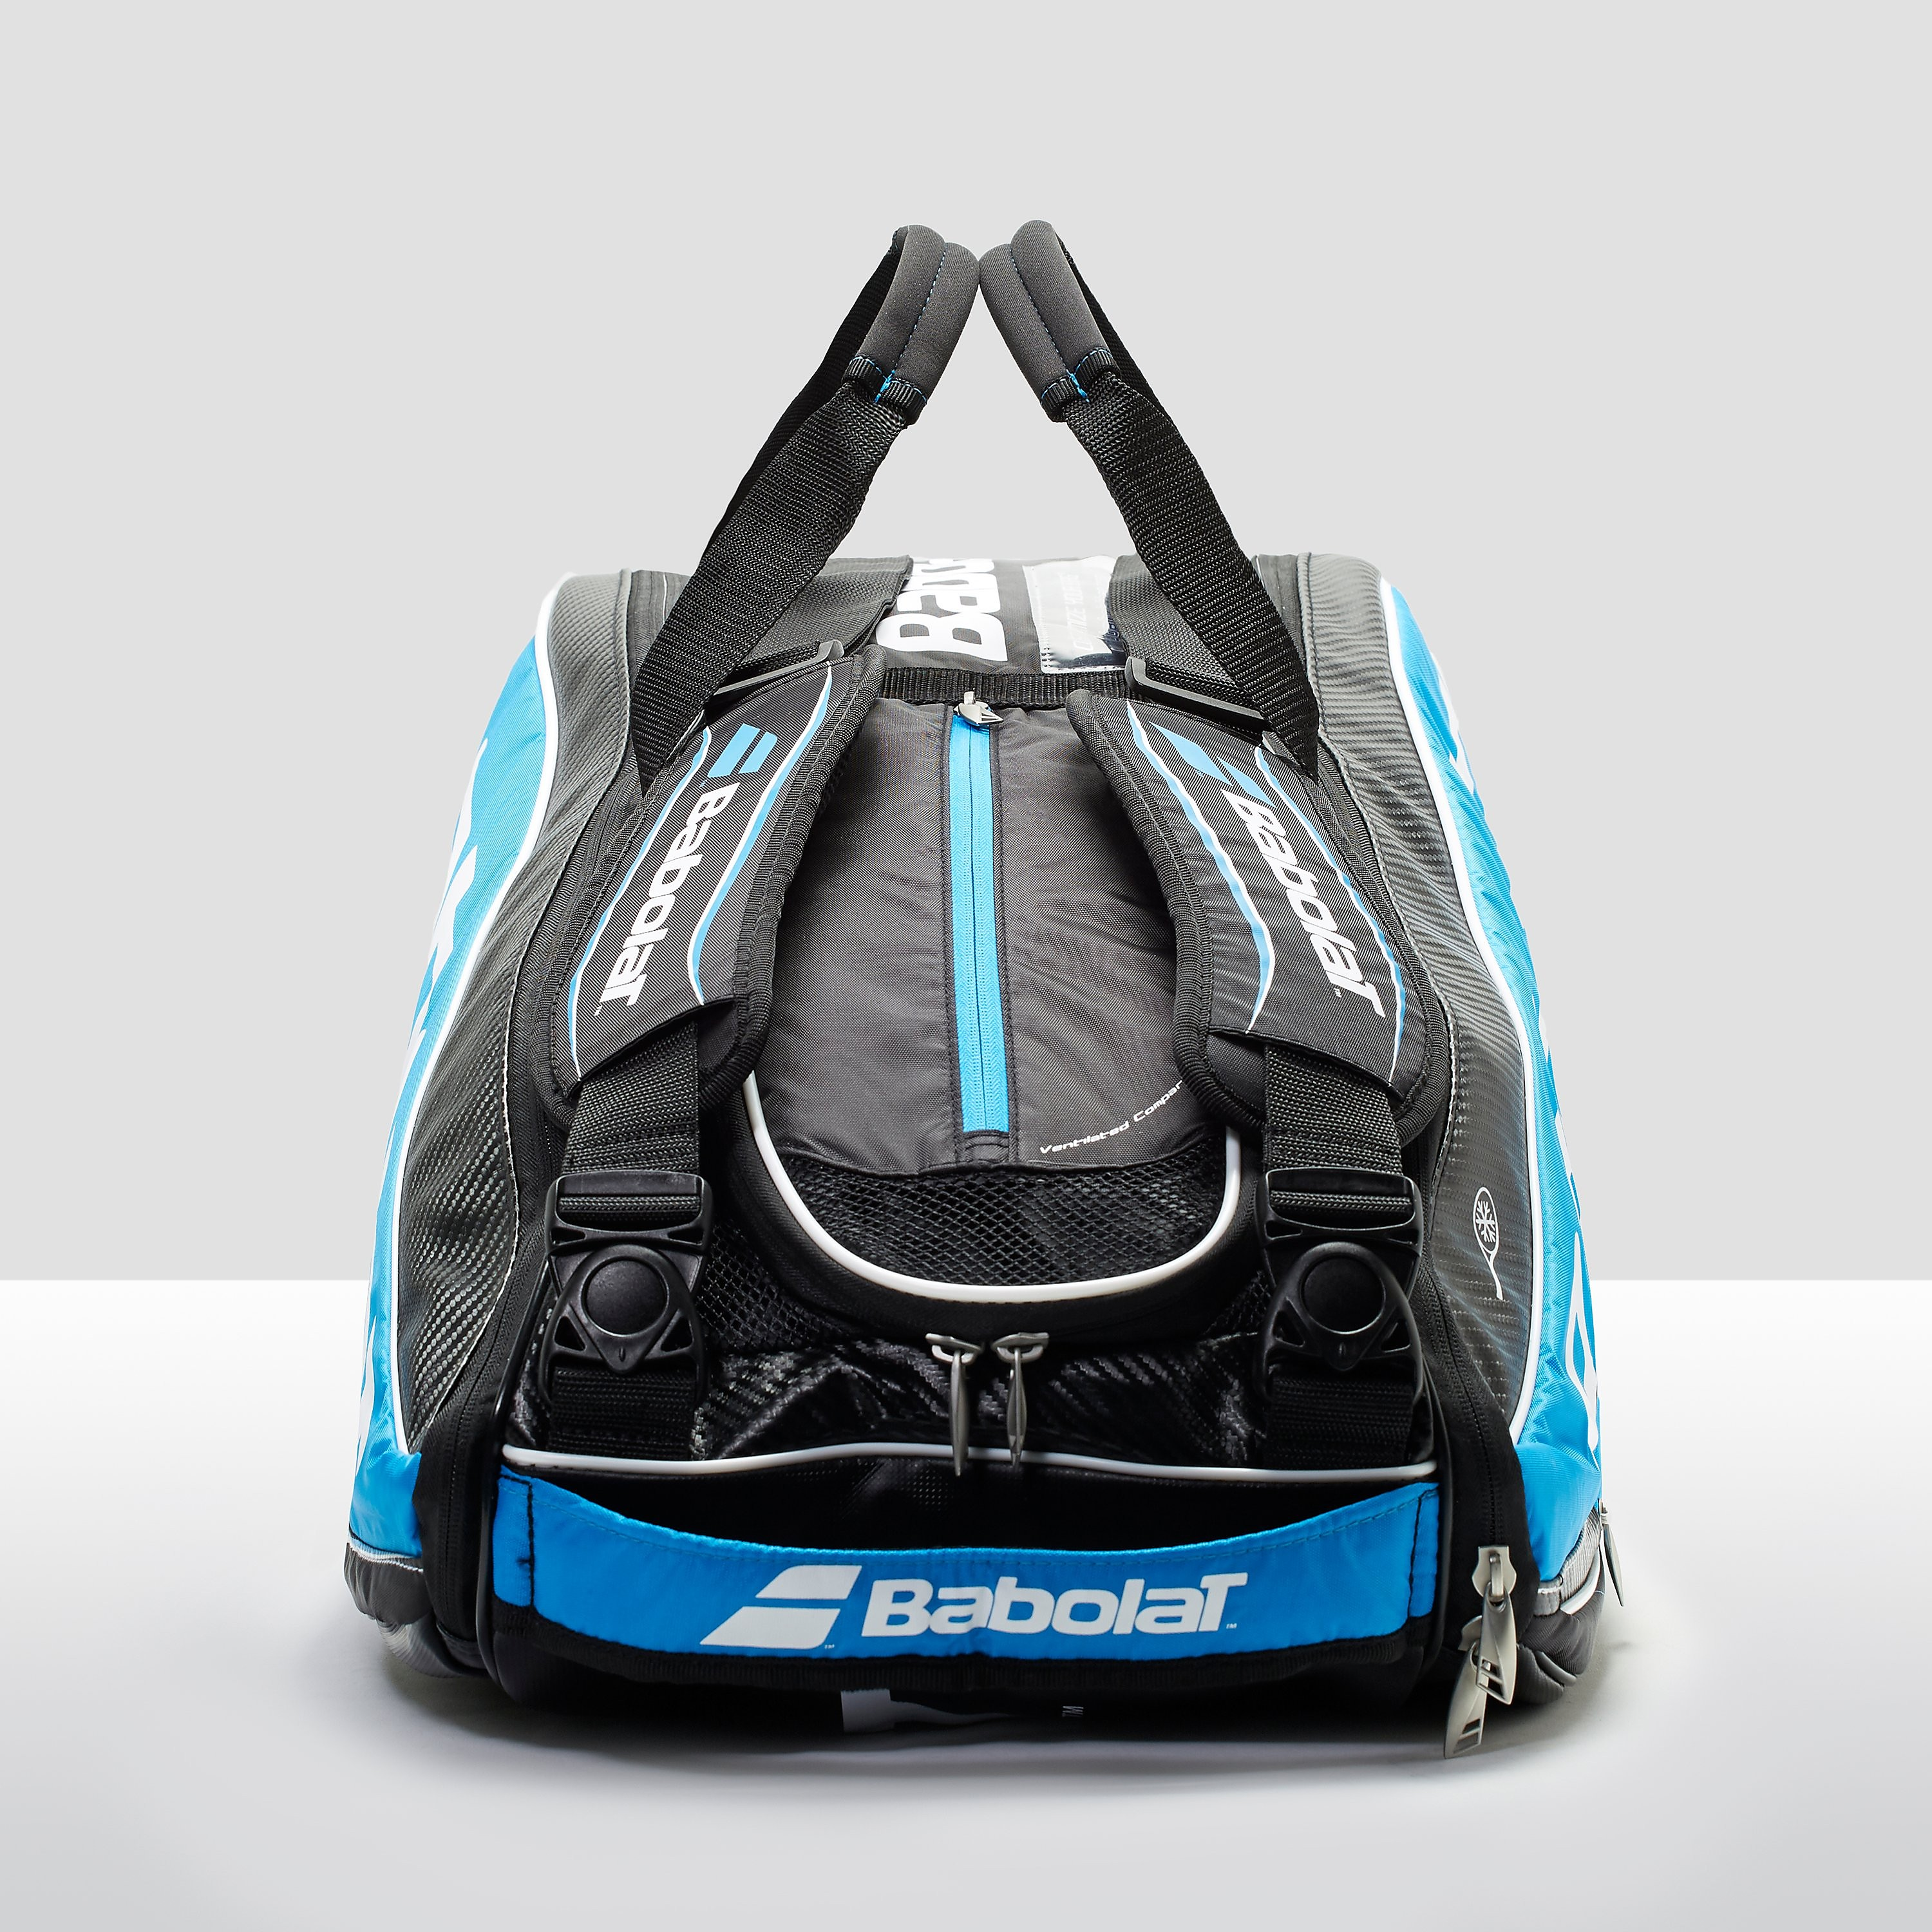 BABOLAT Racket Holder x9 Pure Drive